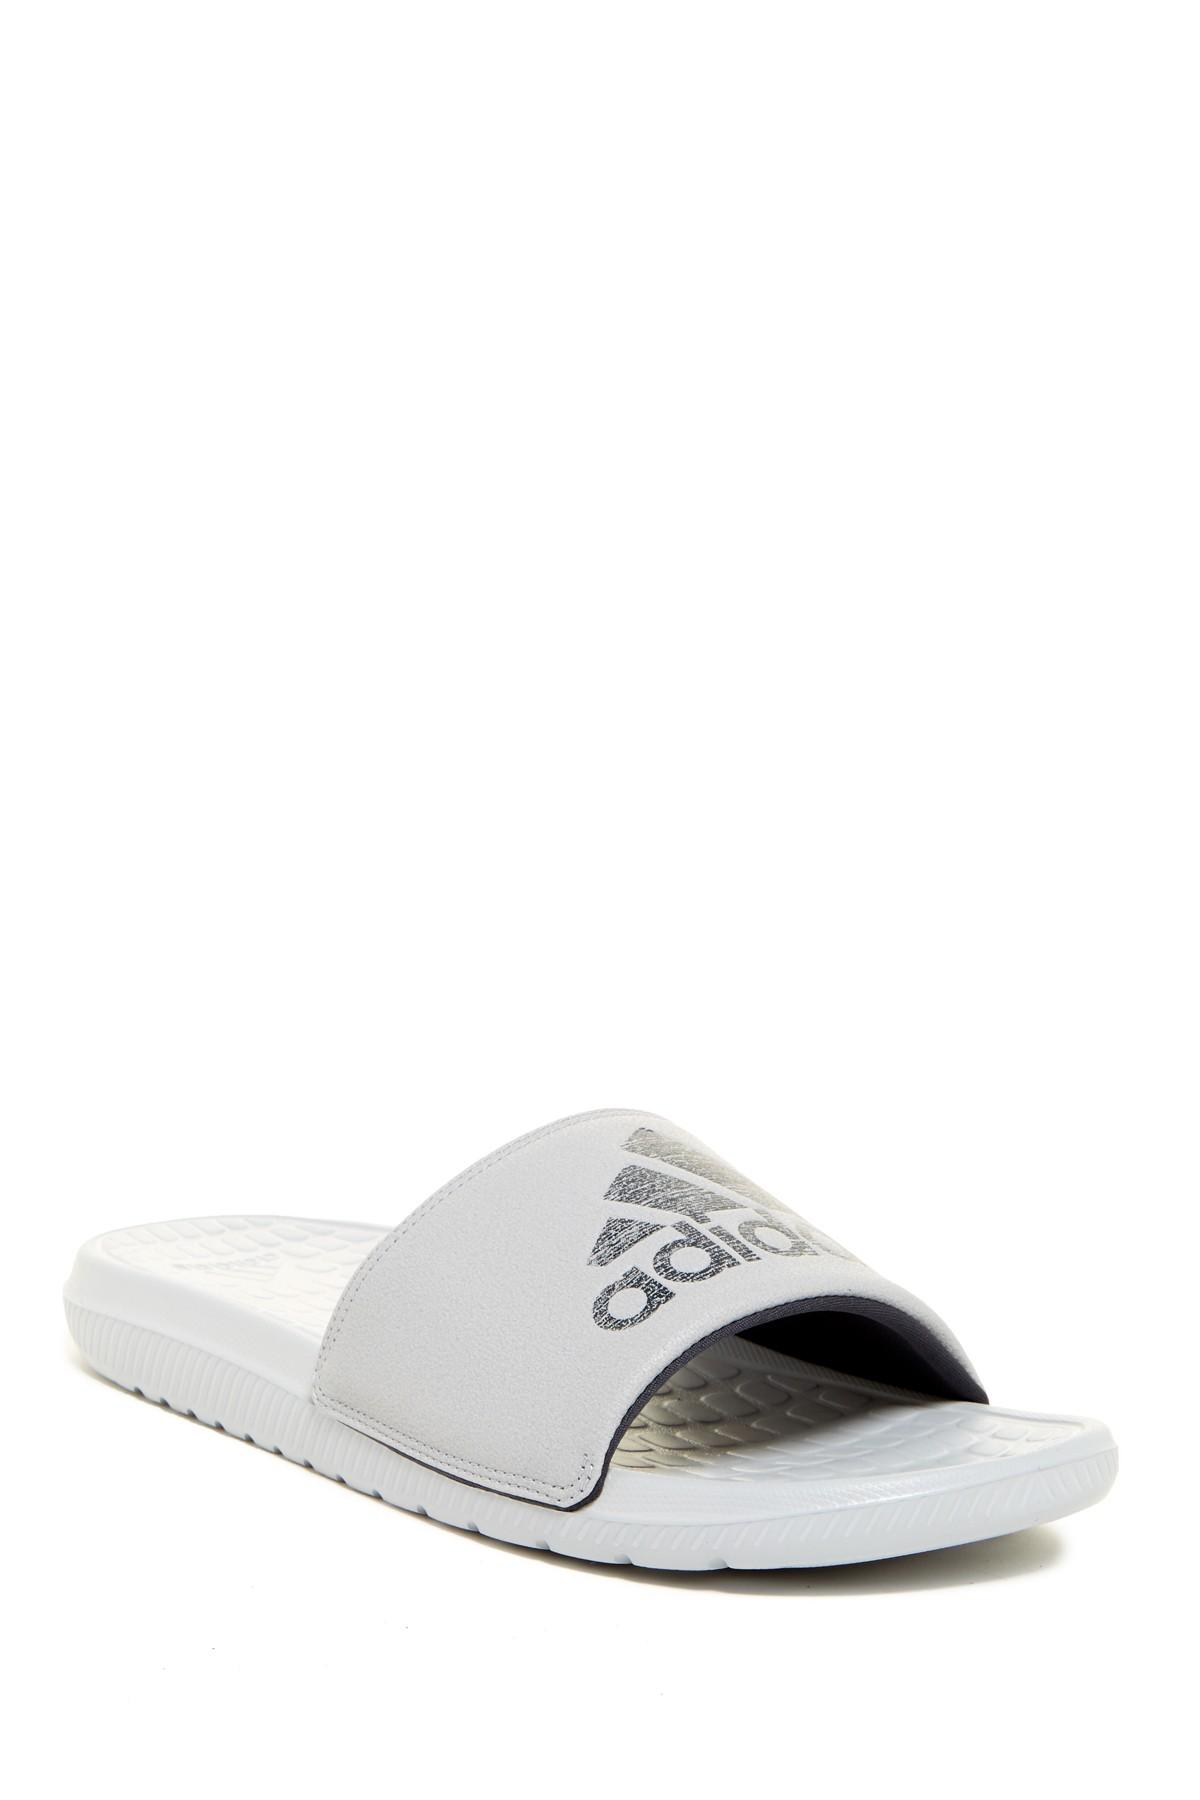 Adidas Originals Voloomix Slide Sandal In White For Men Lyst